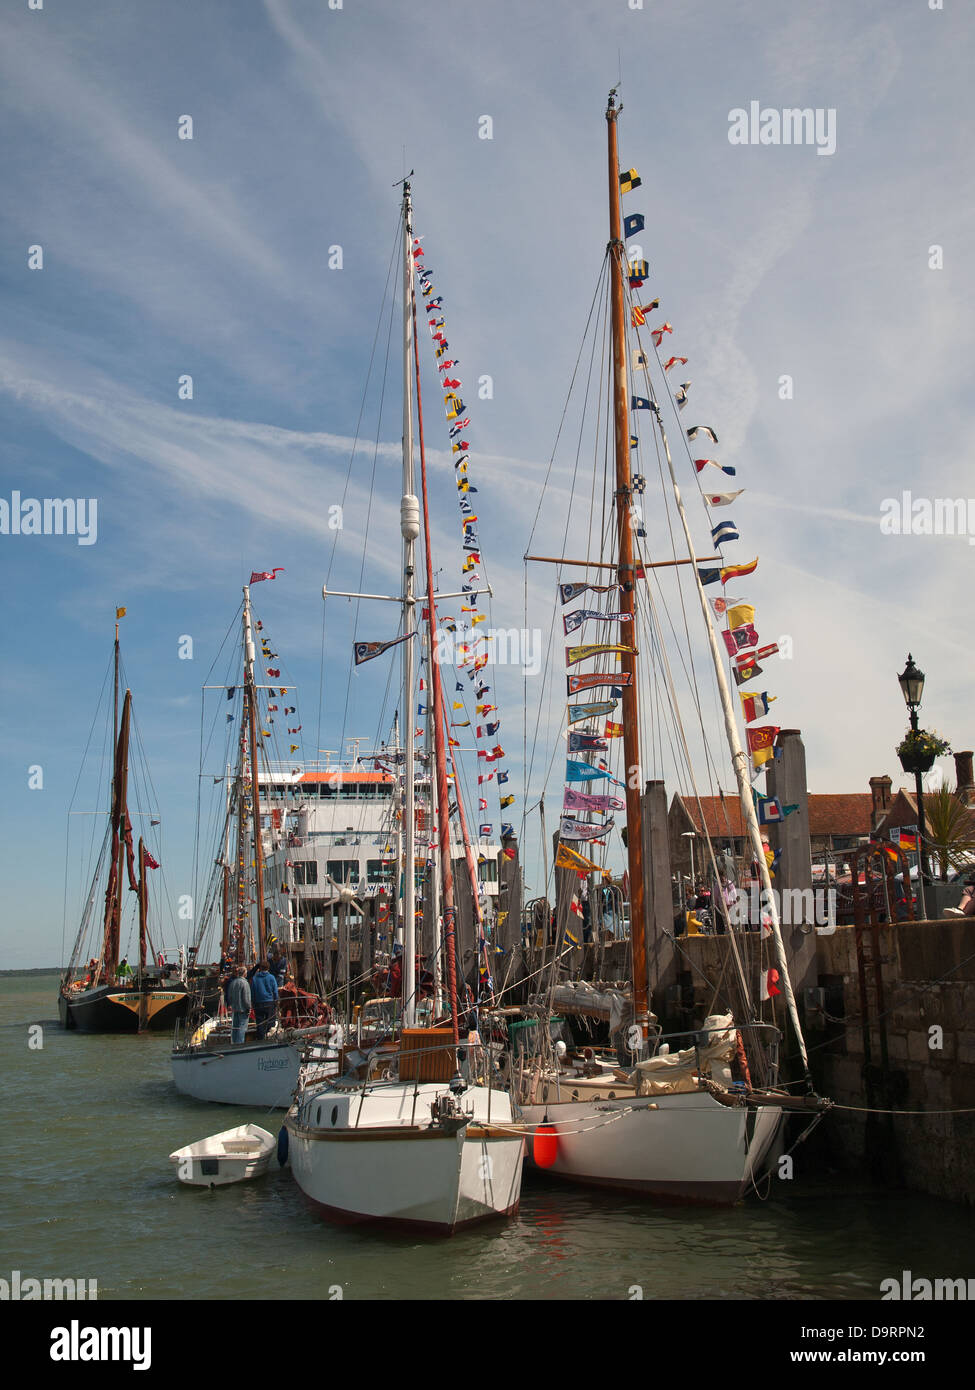 Yarmouth Isle of Wight England UK during the 2013 Old Gaffers Festival Stock Photo